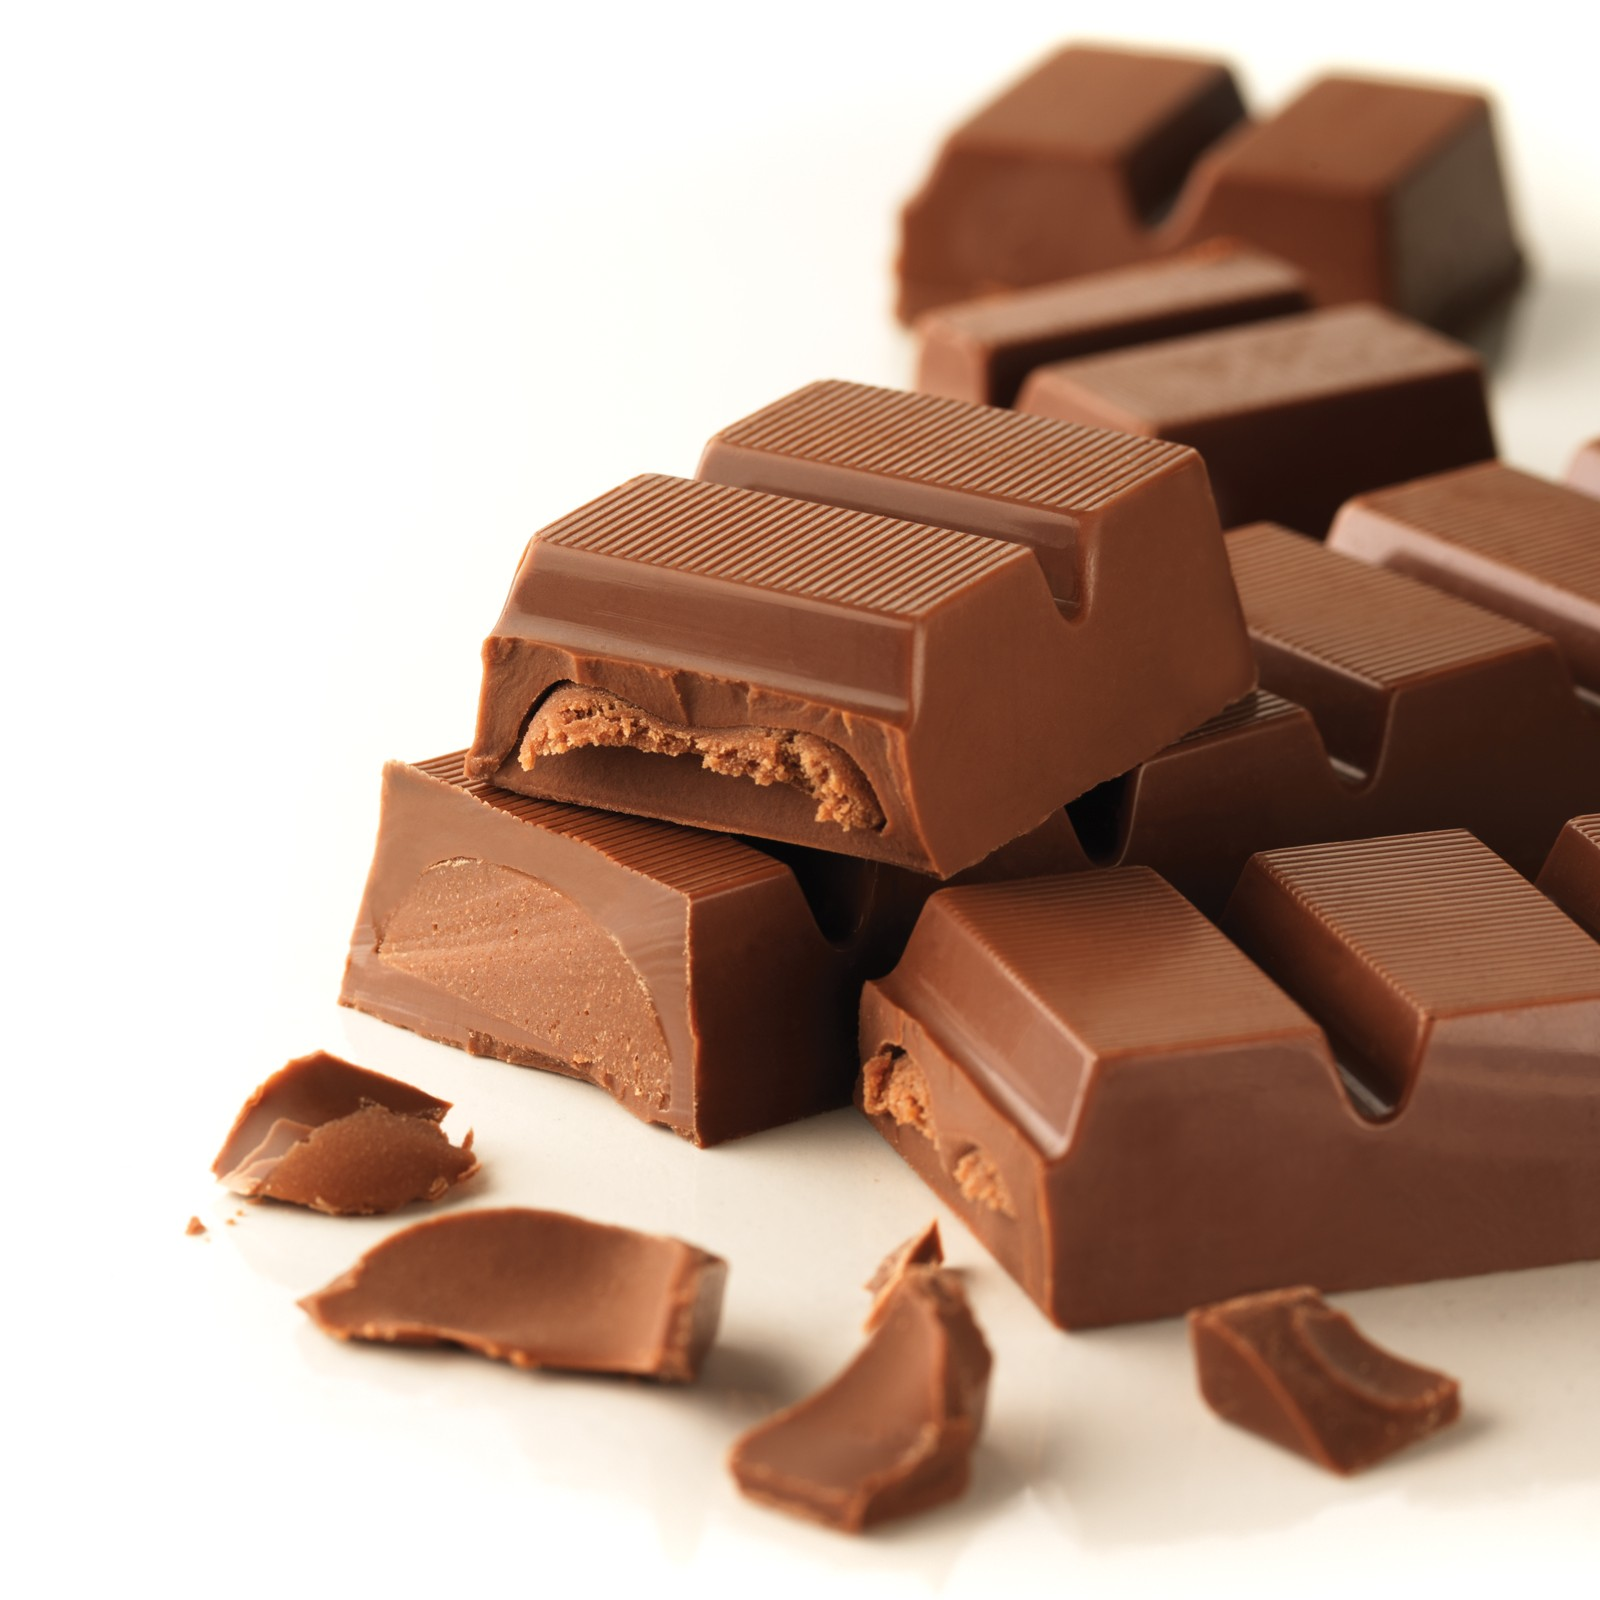 How to Remove Chocolate Stains From Carpet | Waukesha ...